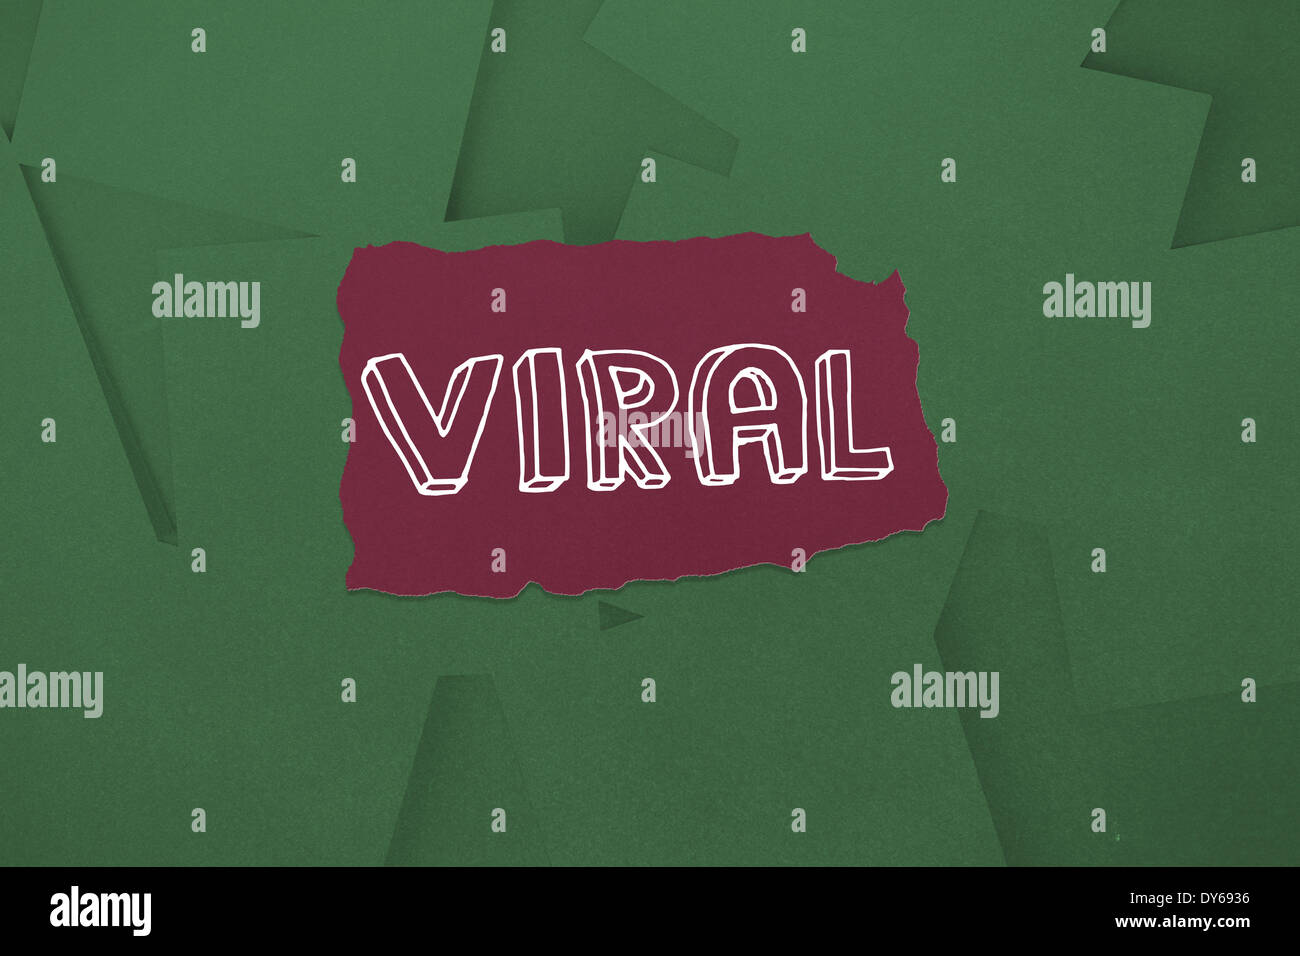 Viral against digitally generated green paper strewn - Stock Image